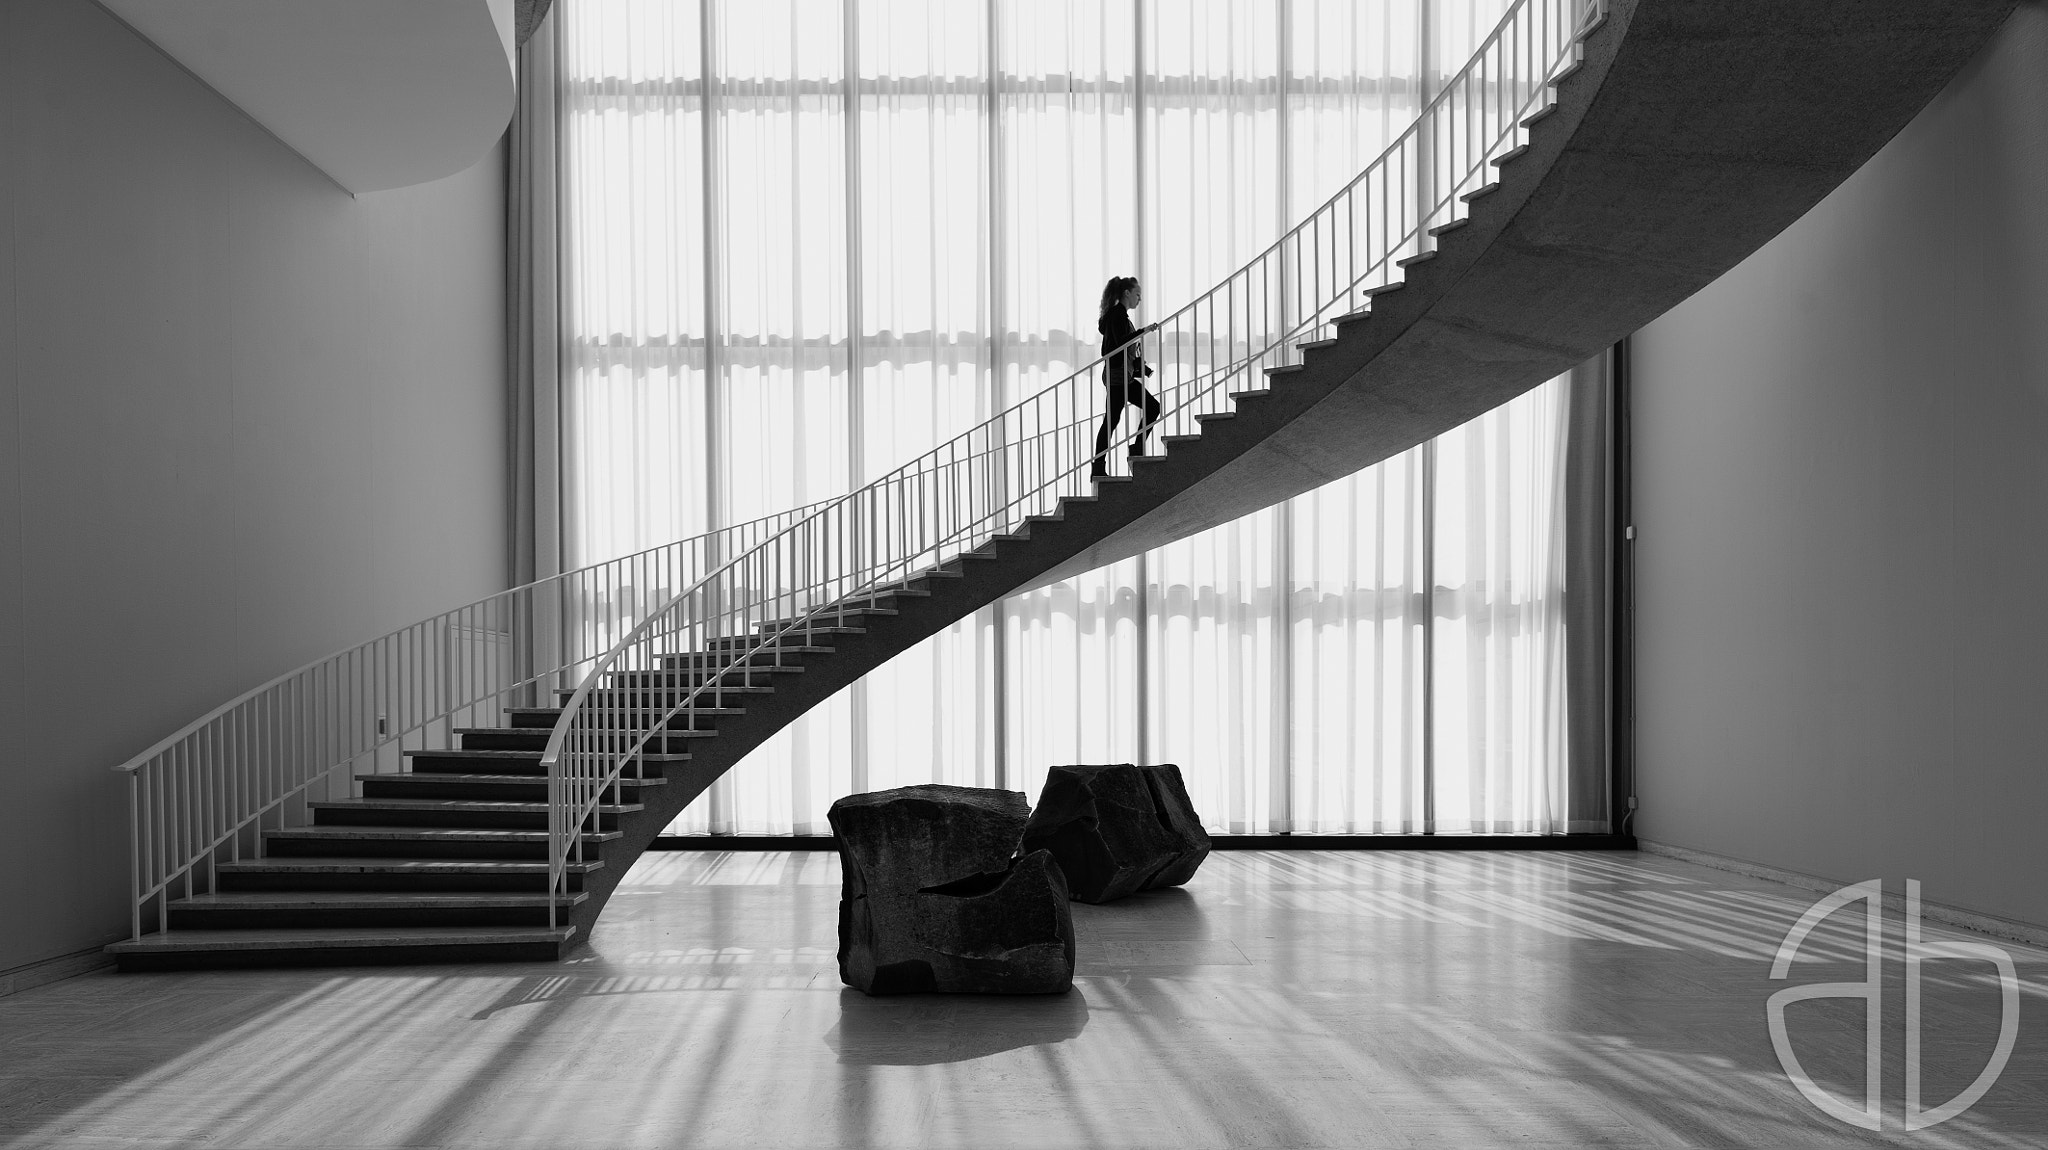 Photograph Ascent by Ally Byrom on 500px